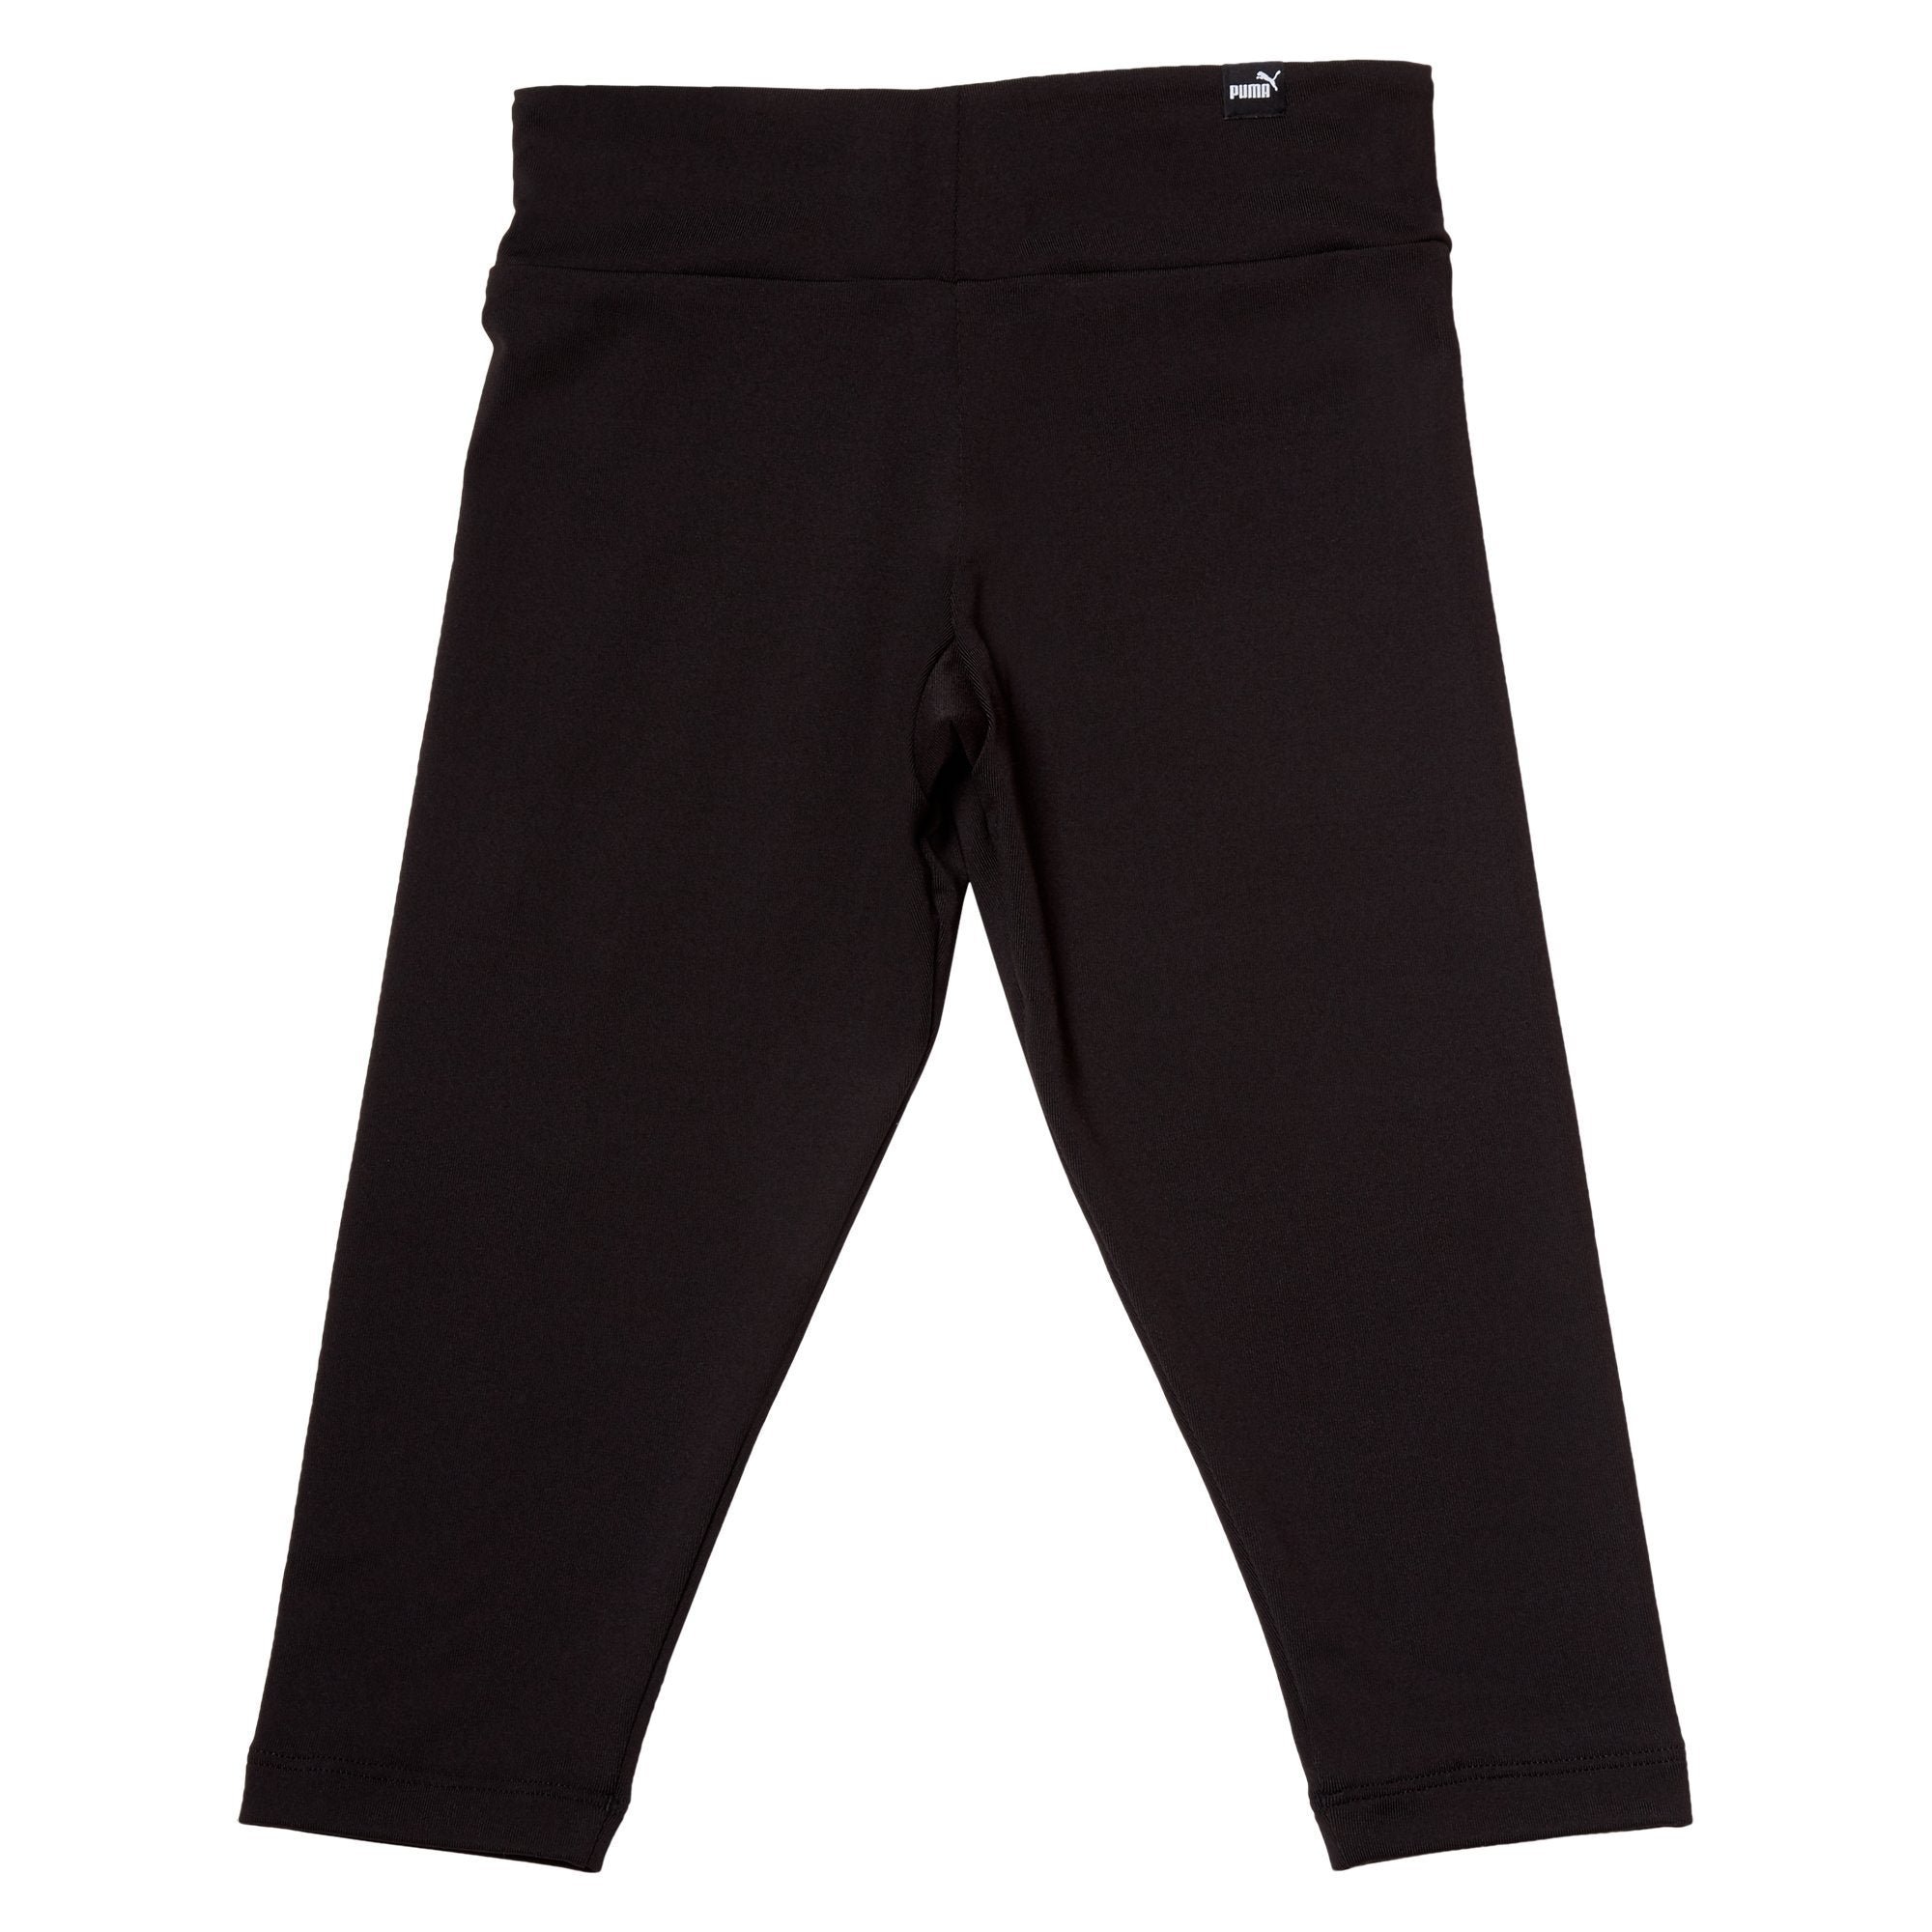 Puma Girls Active Leggings -Black Apparel Puma  (2122603167803)